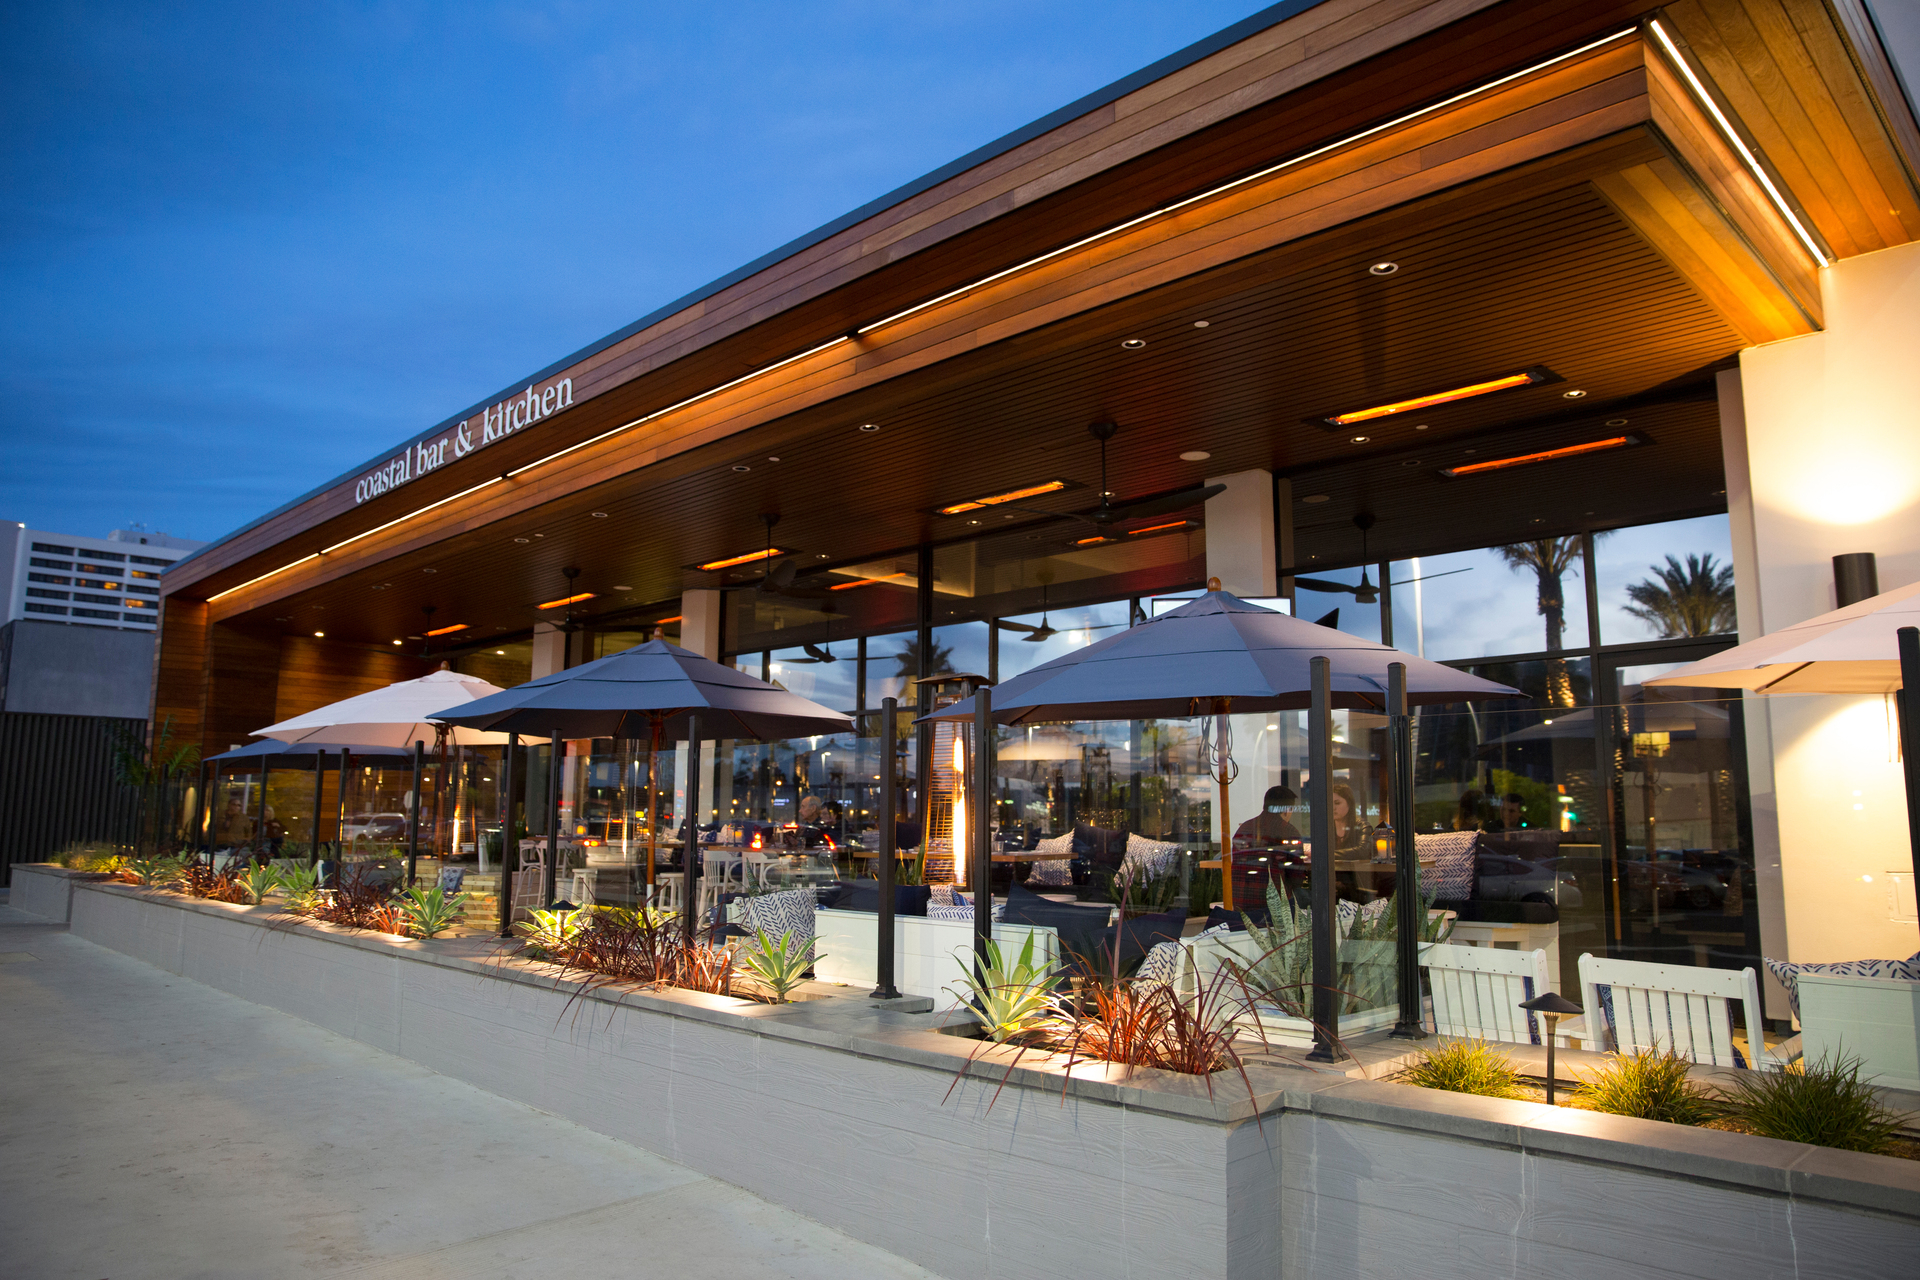 The outdoor eating spaces at Brio Coastal Bar features our WD-Series dual element heaters for their outstanding performance and modern look. WD-Series heaters are available in a range of colors, to coordinate with your interior or exterior environment. Choose from brushed stainless steel or eight standard color finish options.